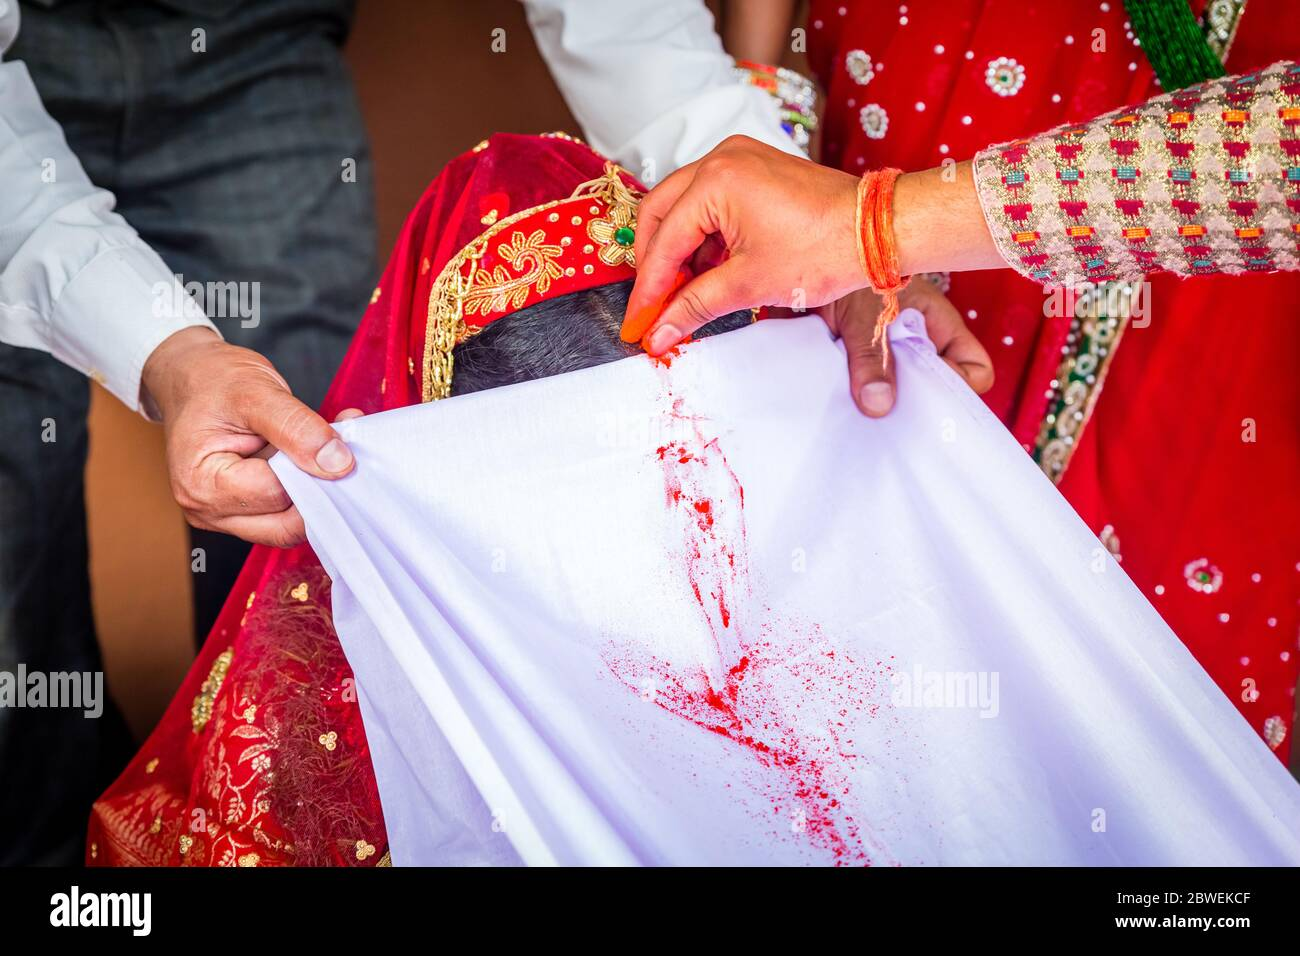 nepali wedding high resolution stock photography and images alamy https www alamy com the groom applies sindoor or vermilion to the bride as a symbol of marriage according to hindu rituals hindu marriage wedding ceremonynepali wedding image359896335 html